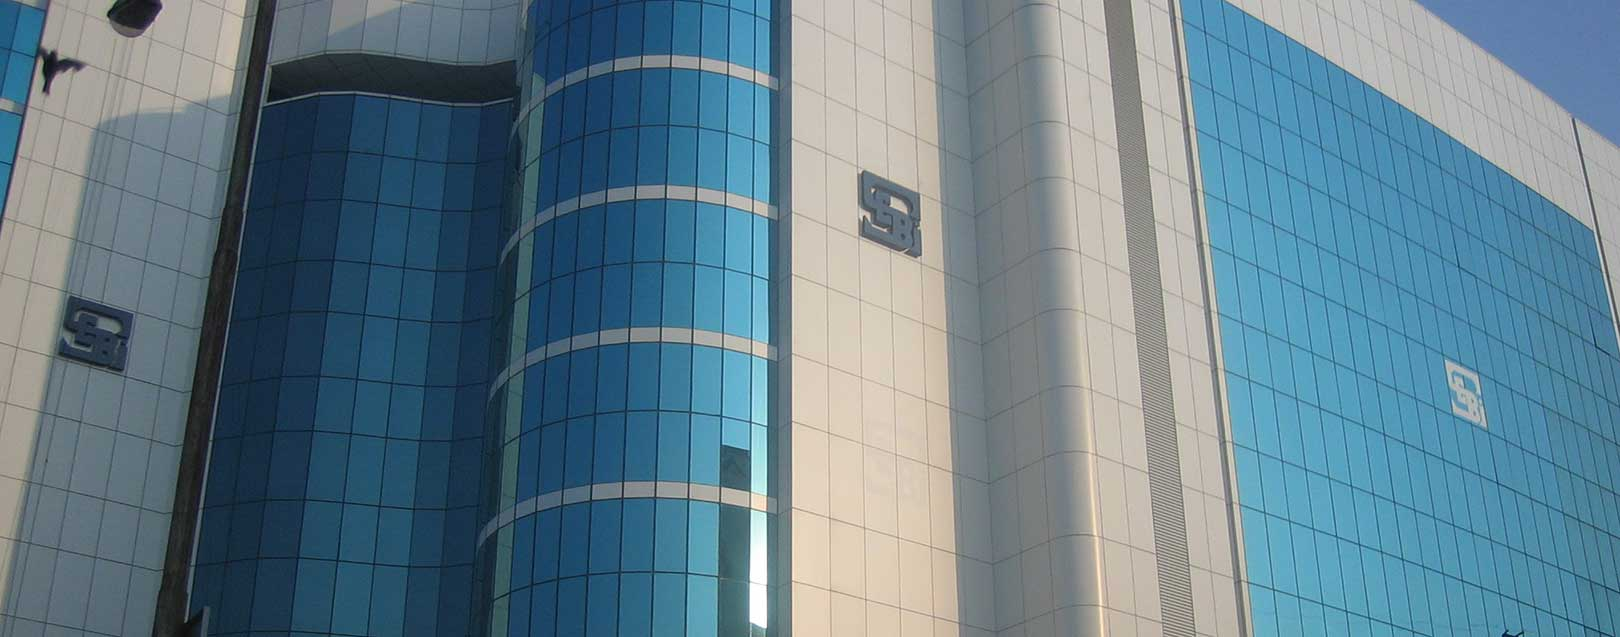 SEBI puts restriction on use of P-Note derivatives